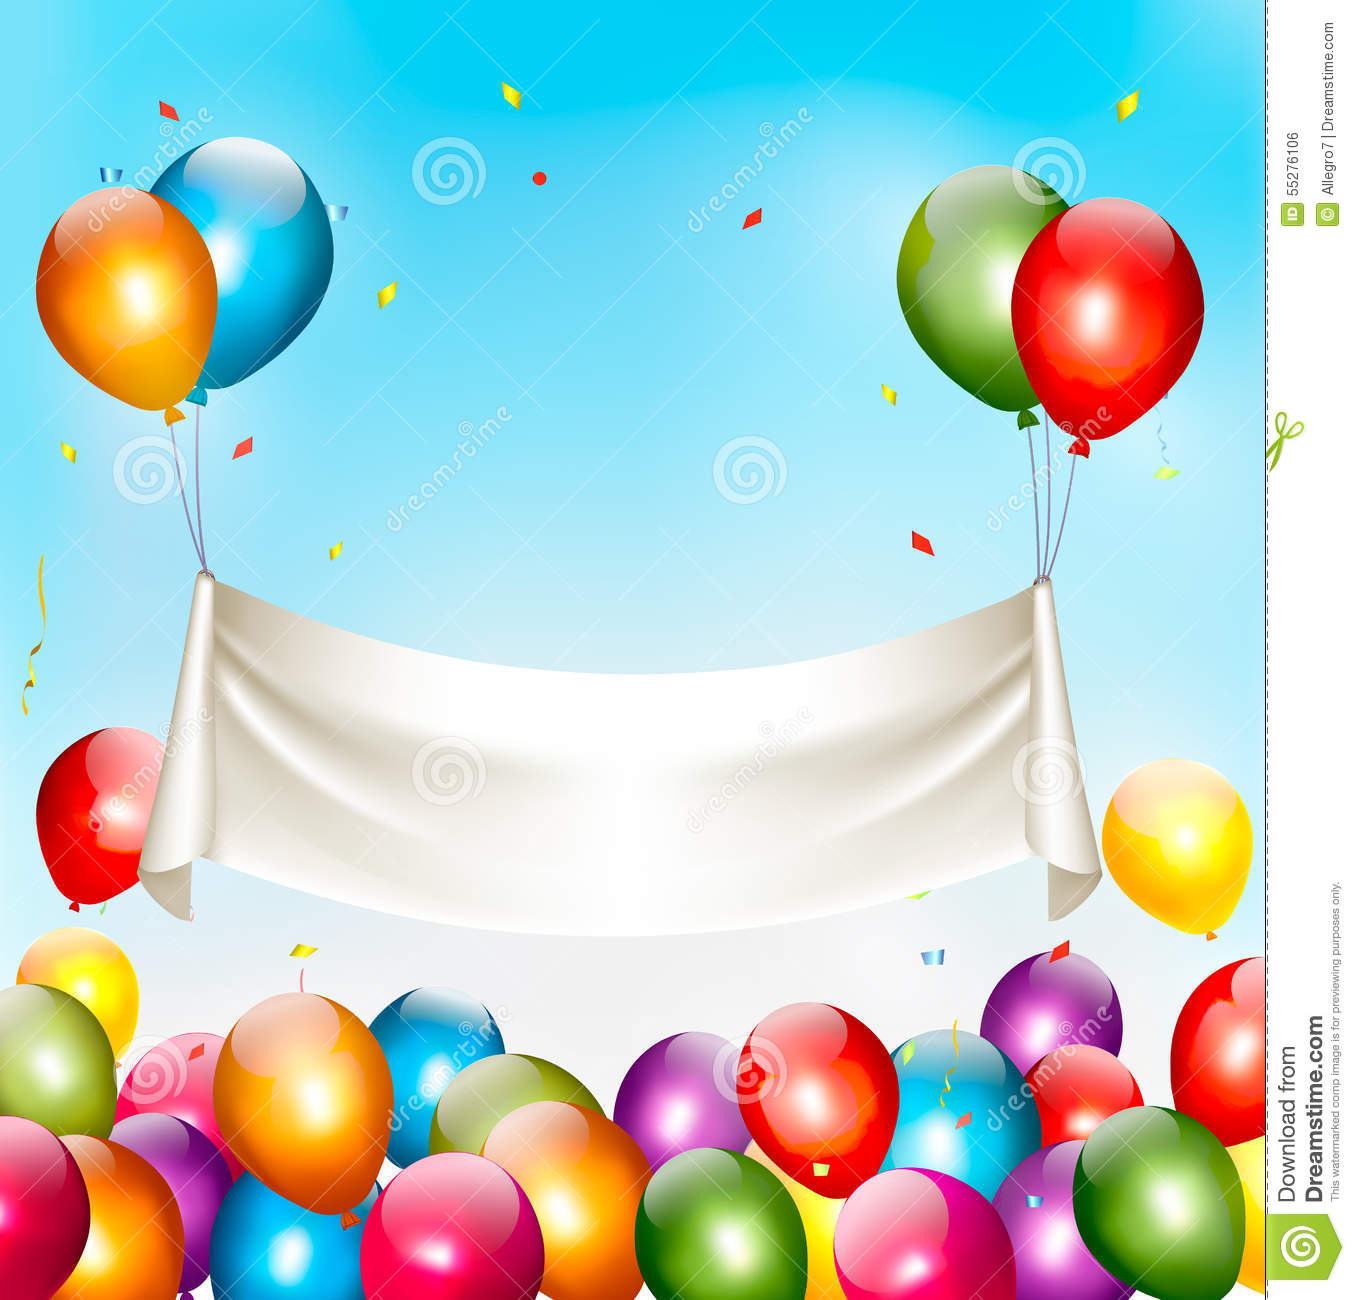 Holiday Birthday Banner With Colorful Balloons And